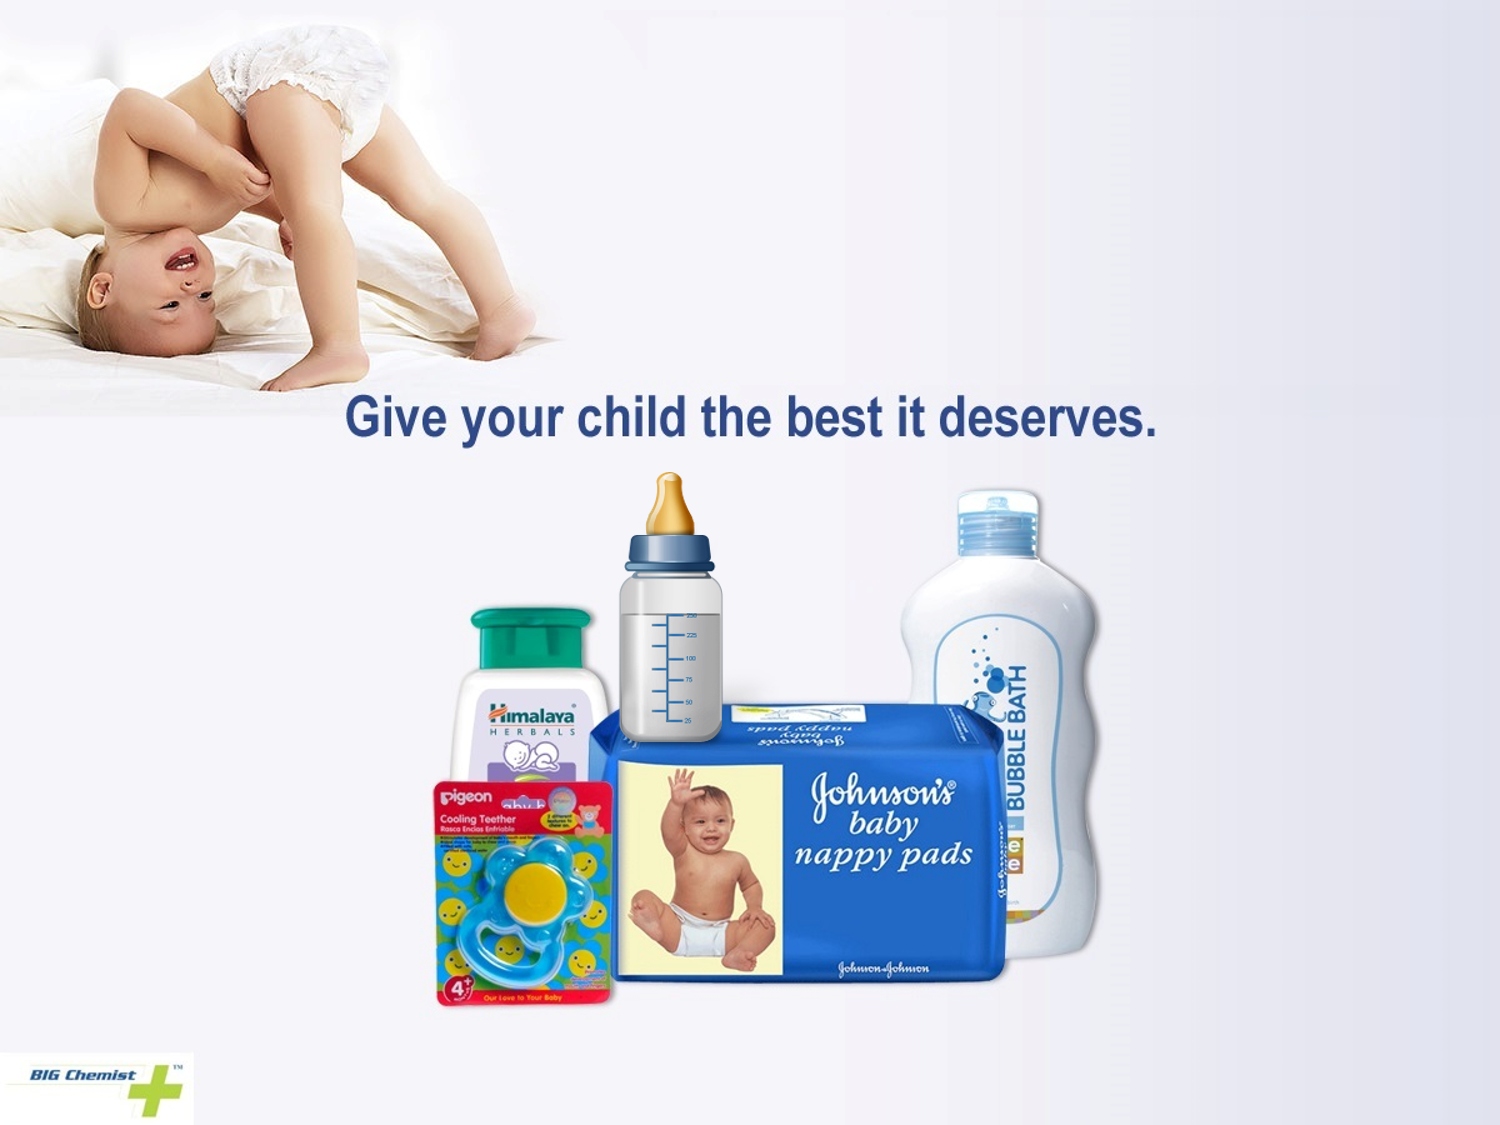 Child health care products